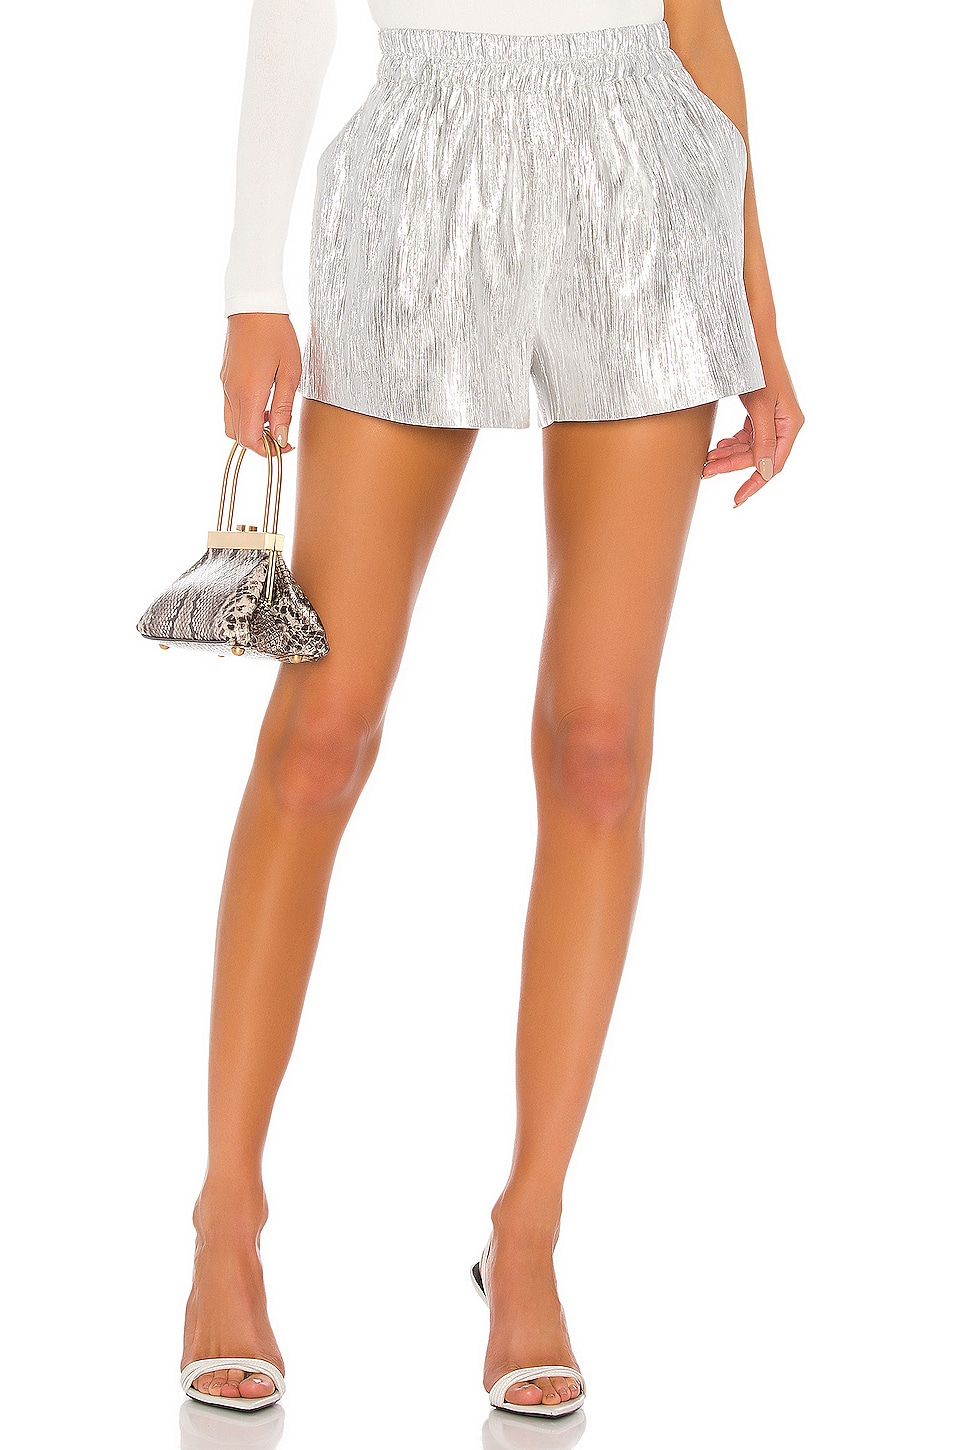 Atoir This Love Shorts in Silver Lining